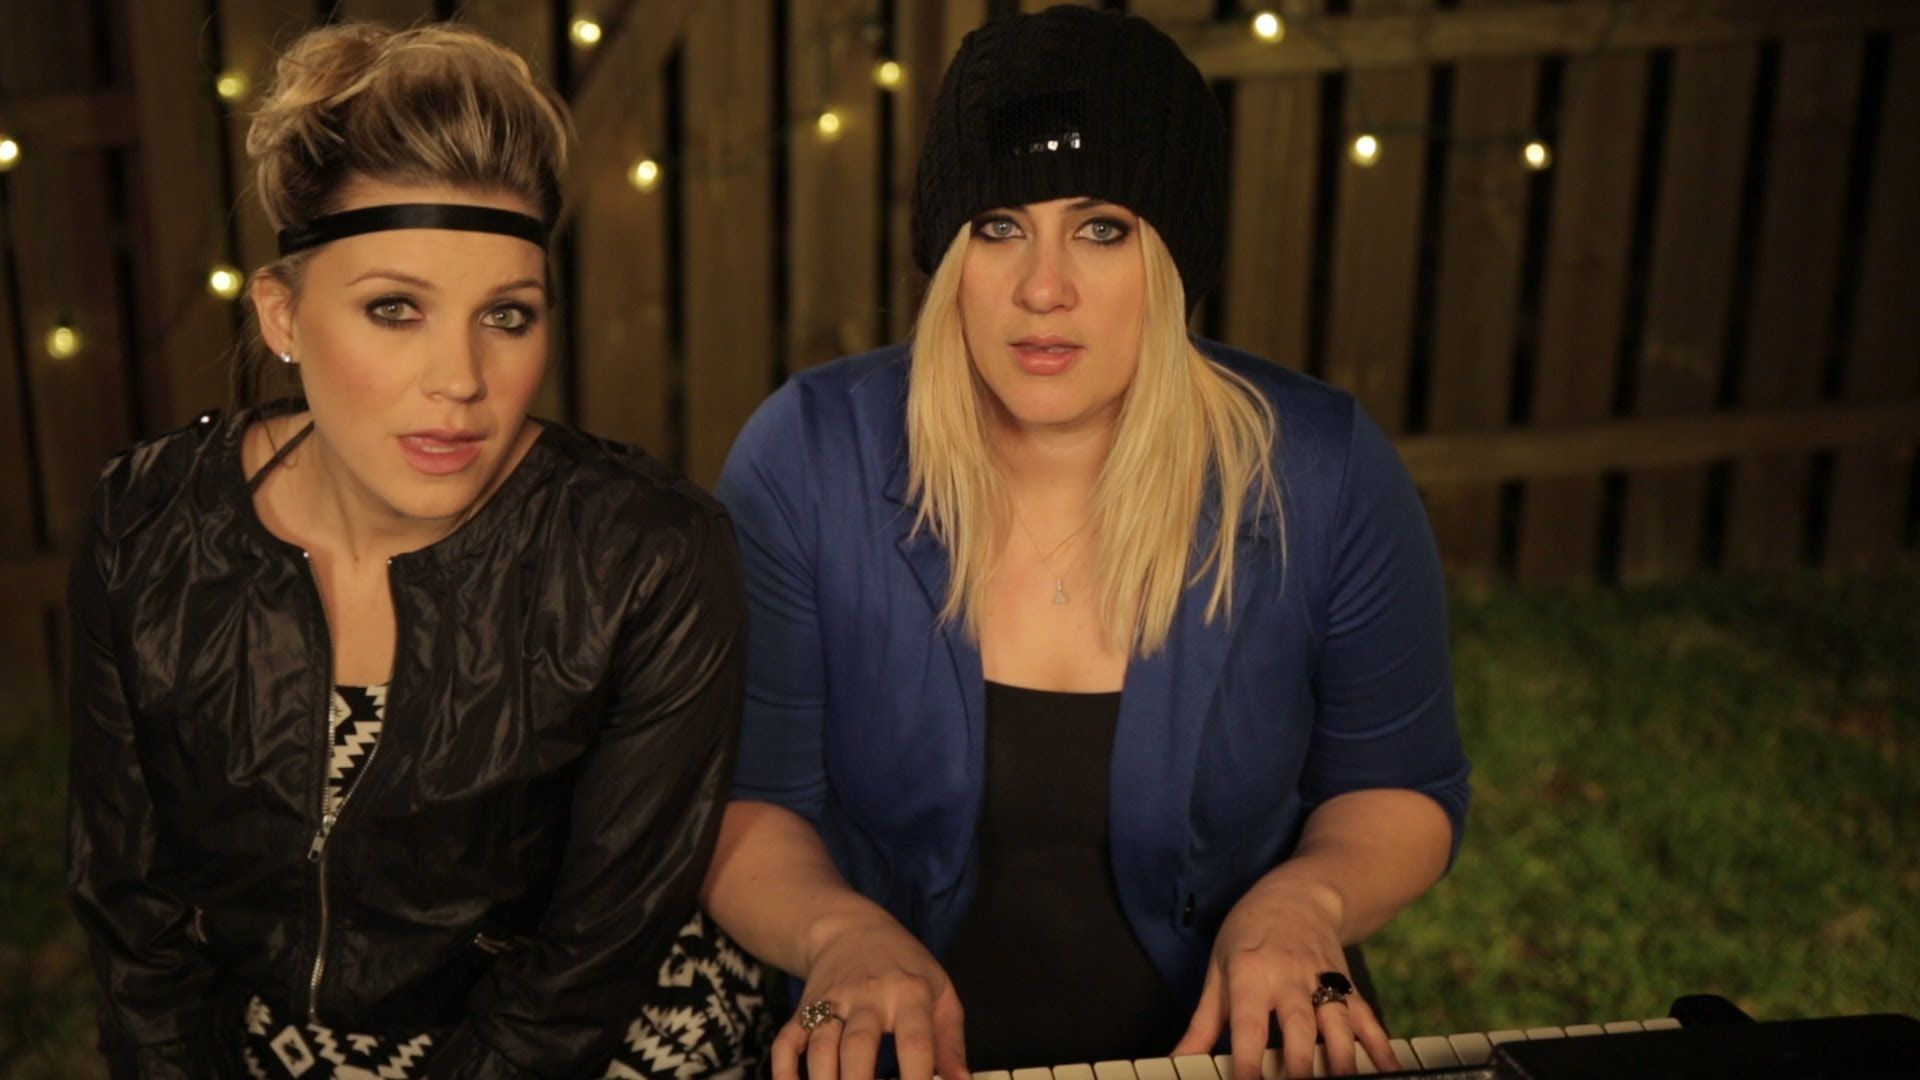 Jill And Kate Since U Been Gone Official Music Video Celebrity Pictures Music Videos Hottest Celebrities